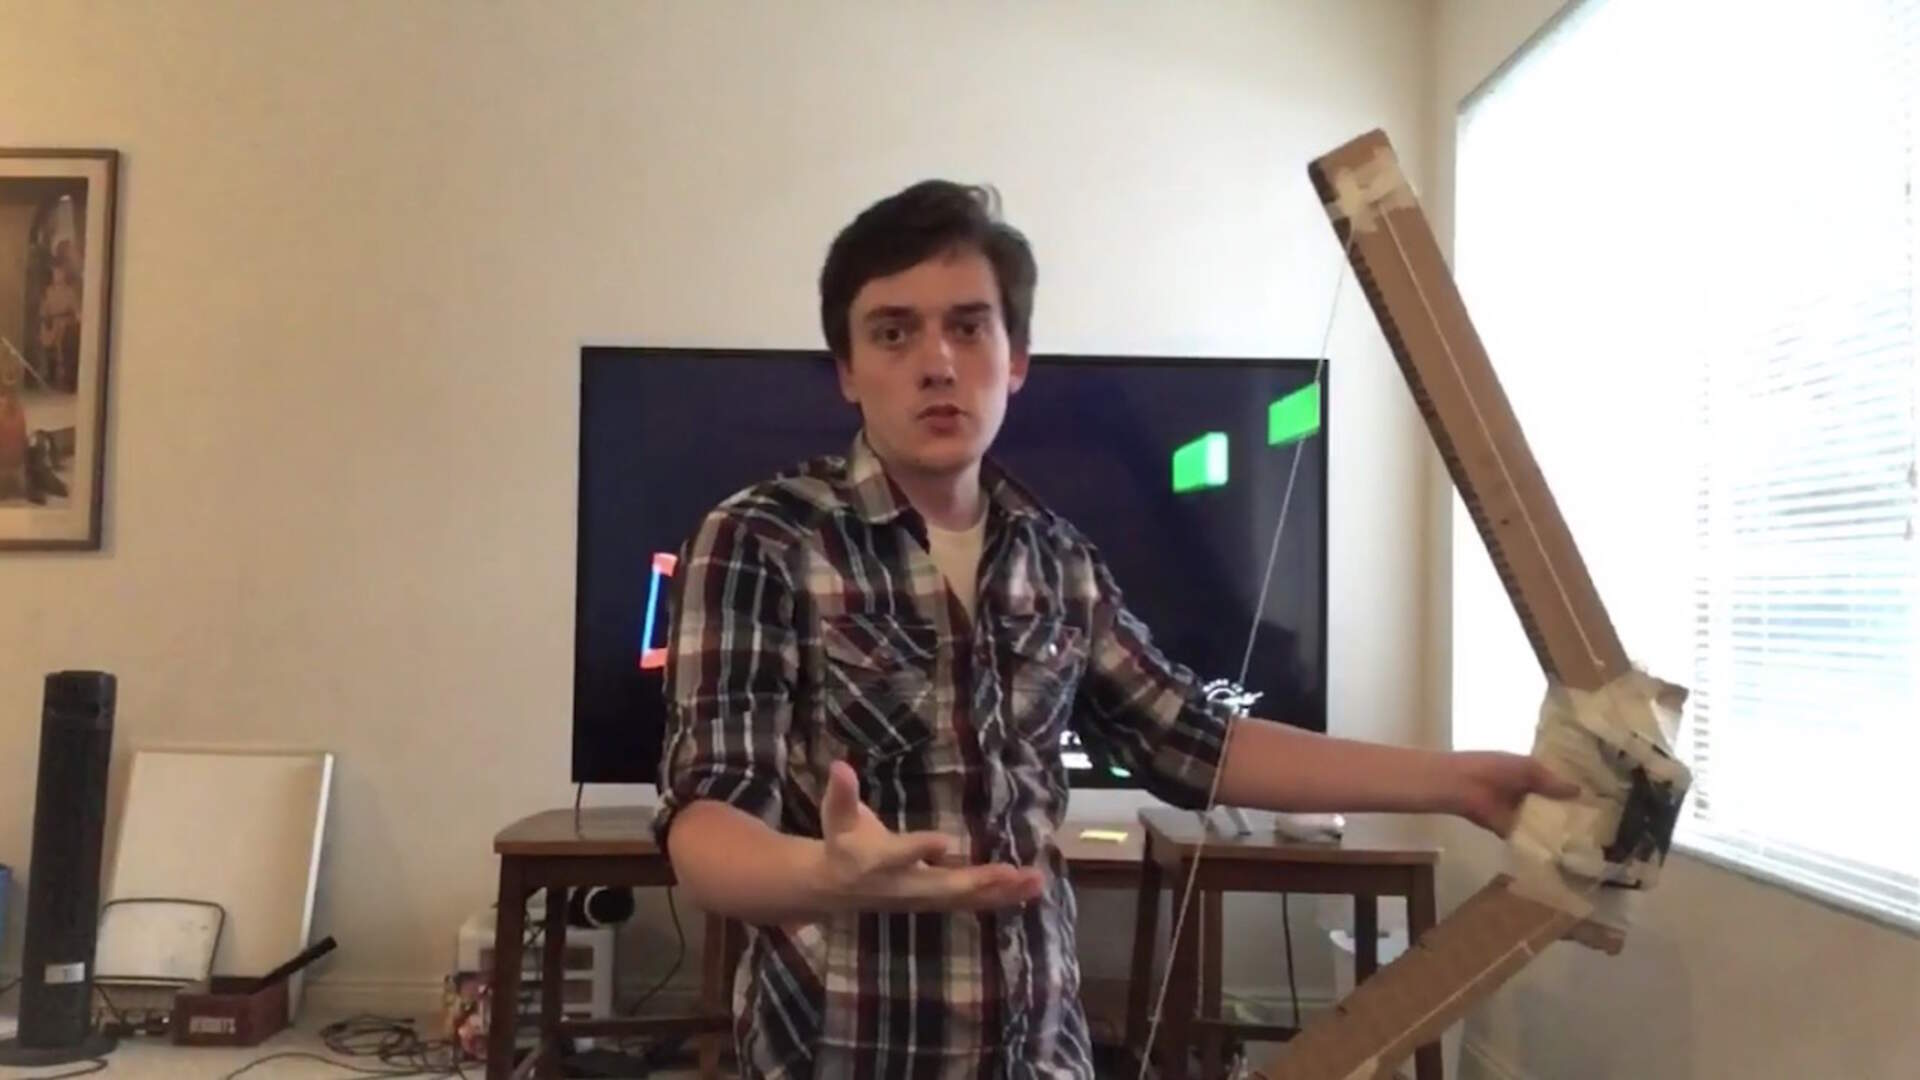 How a Dreams Creator Makes Mo-Cap and Pool Tables With Just Controllers, Tape, and String